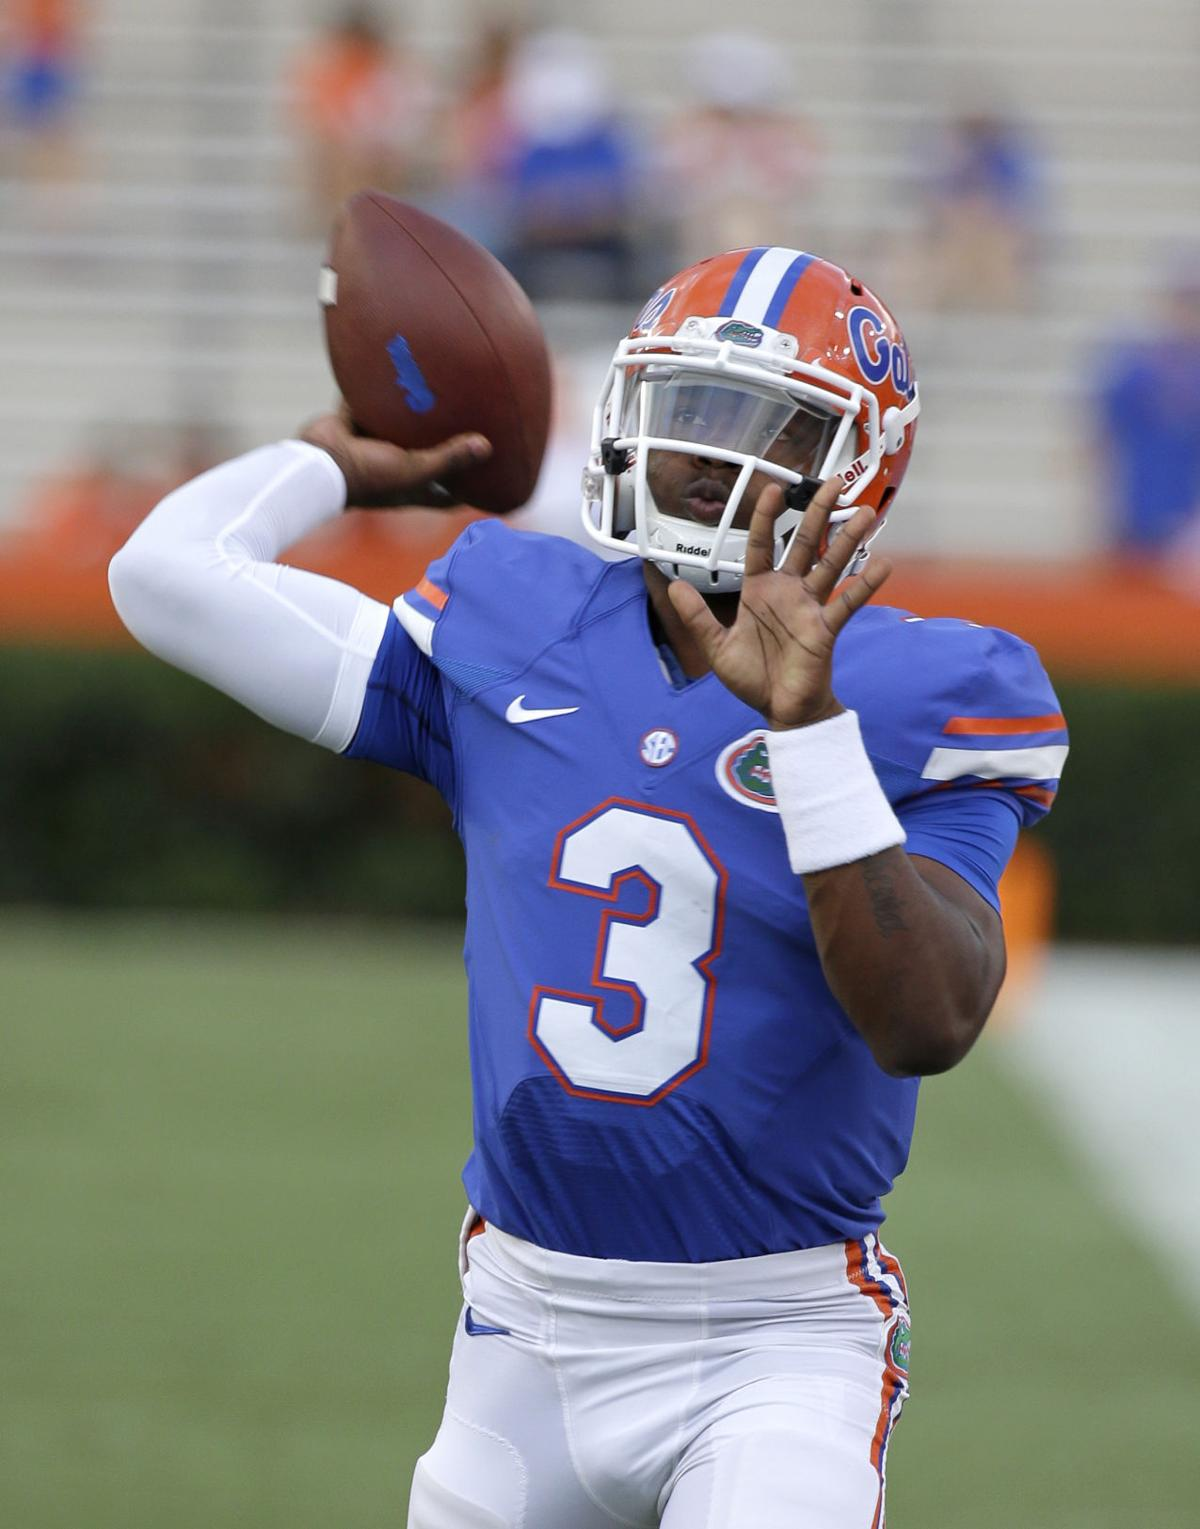 USC opponent preview: No quick fix for new coach McElwain at Florida